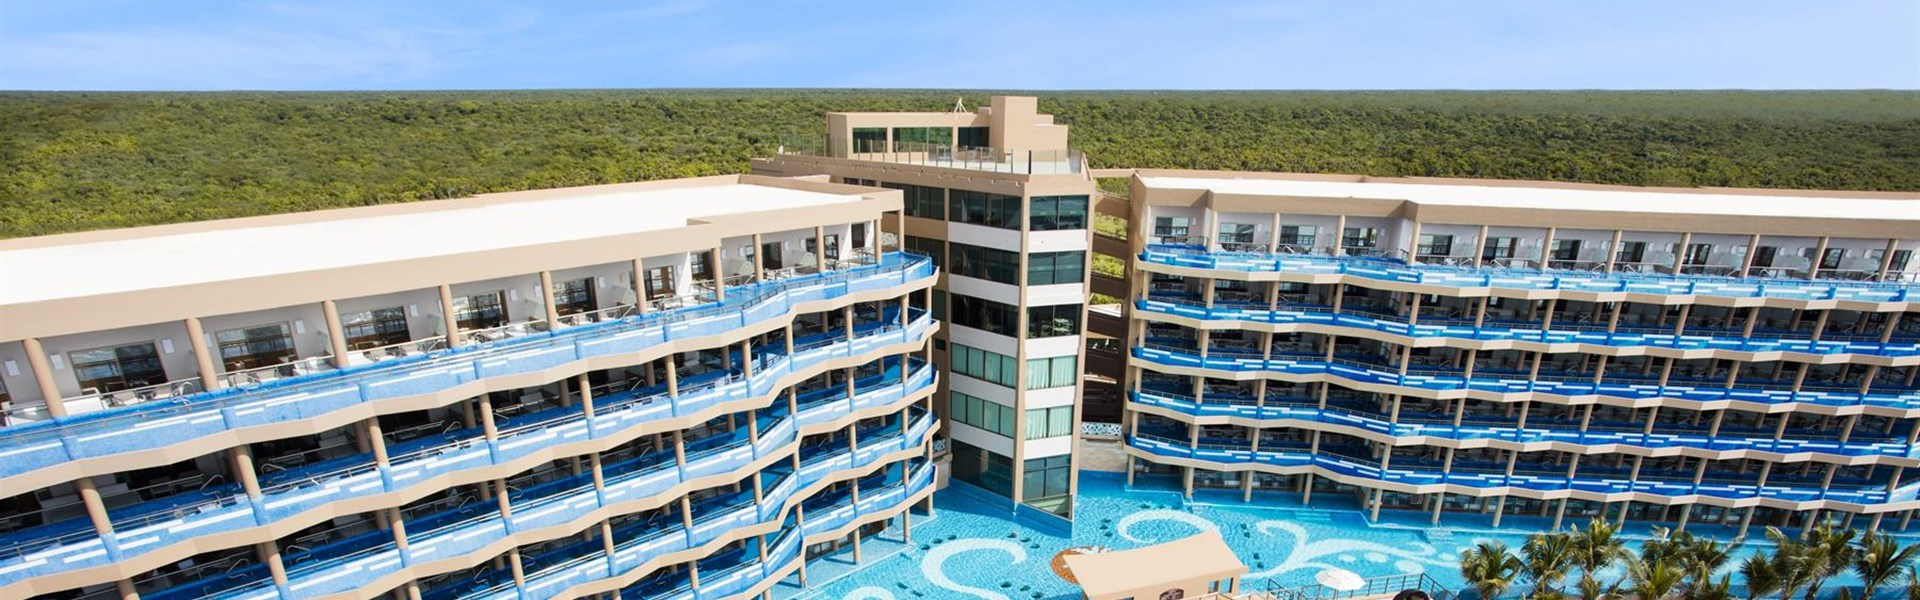 Marco Polo - El Dorado Seaside Suites -